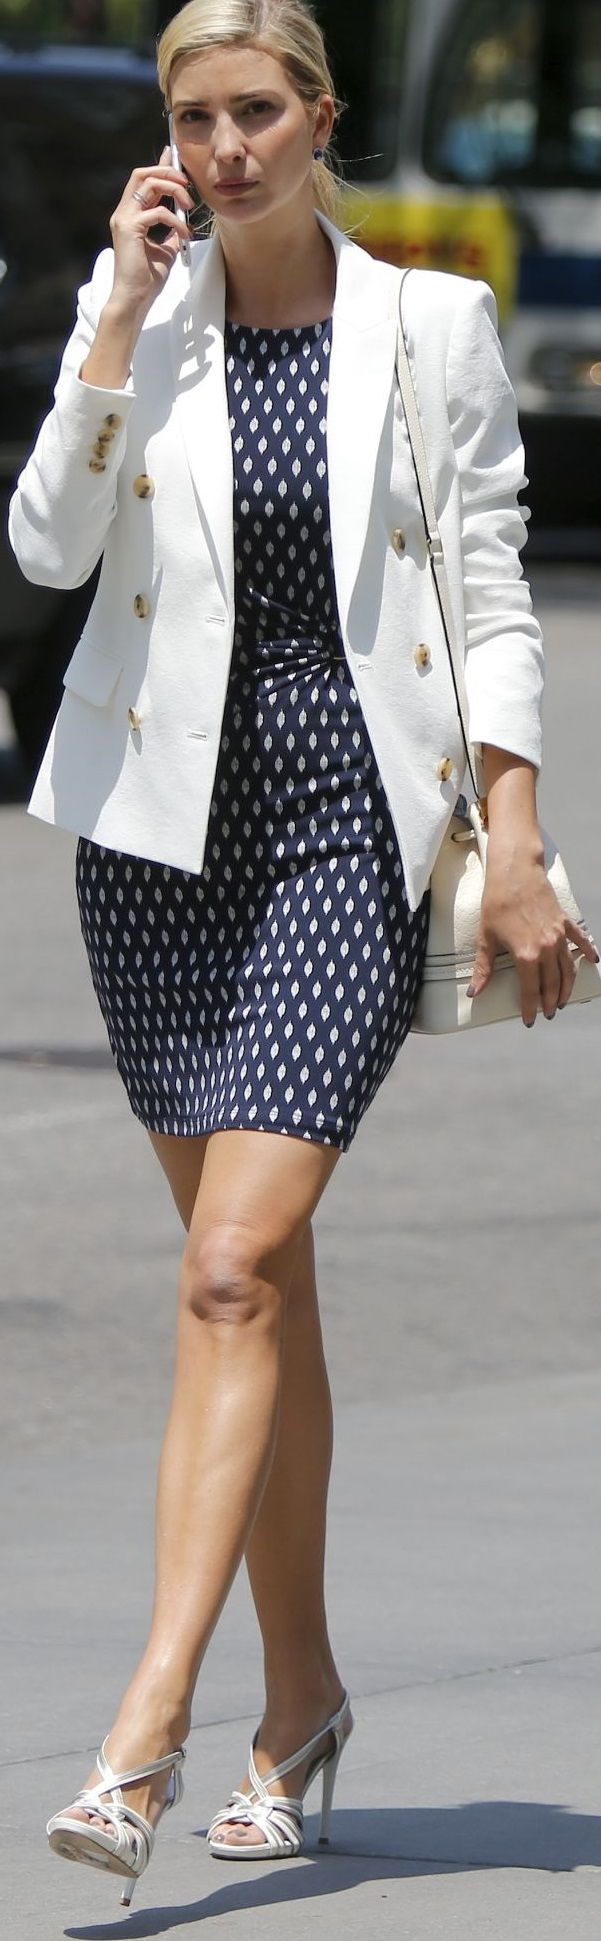 Ivanka Trump Style – Out in NYC, June 2015